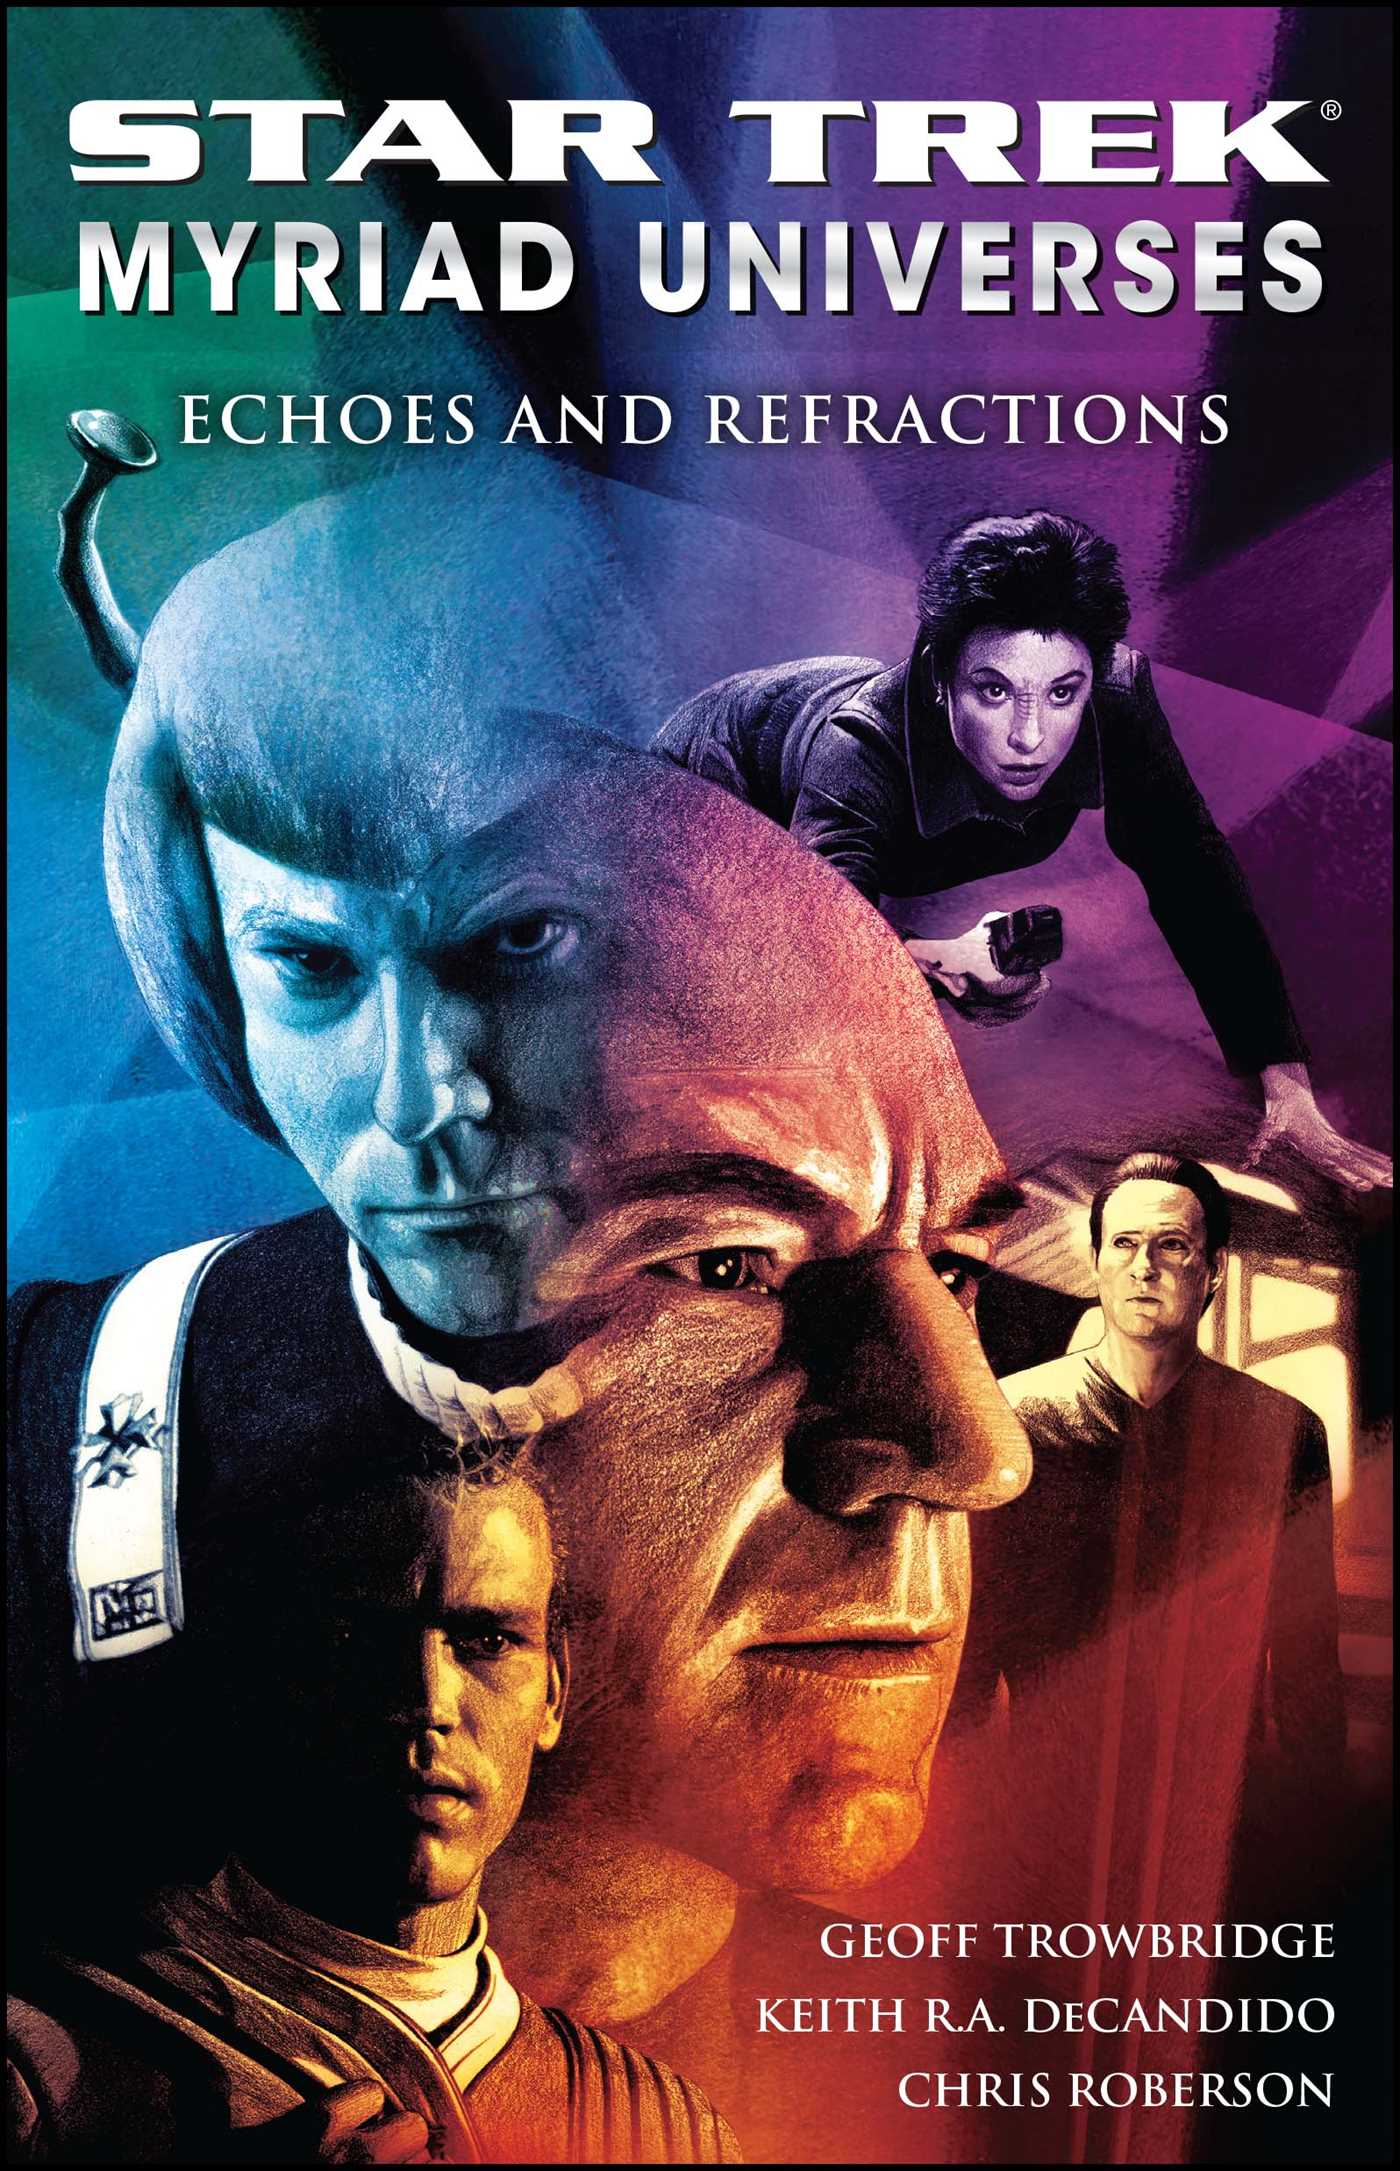 Star trek myriad universes 2 echoes and refractions 9781416571810 hr